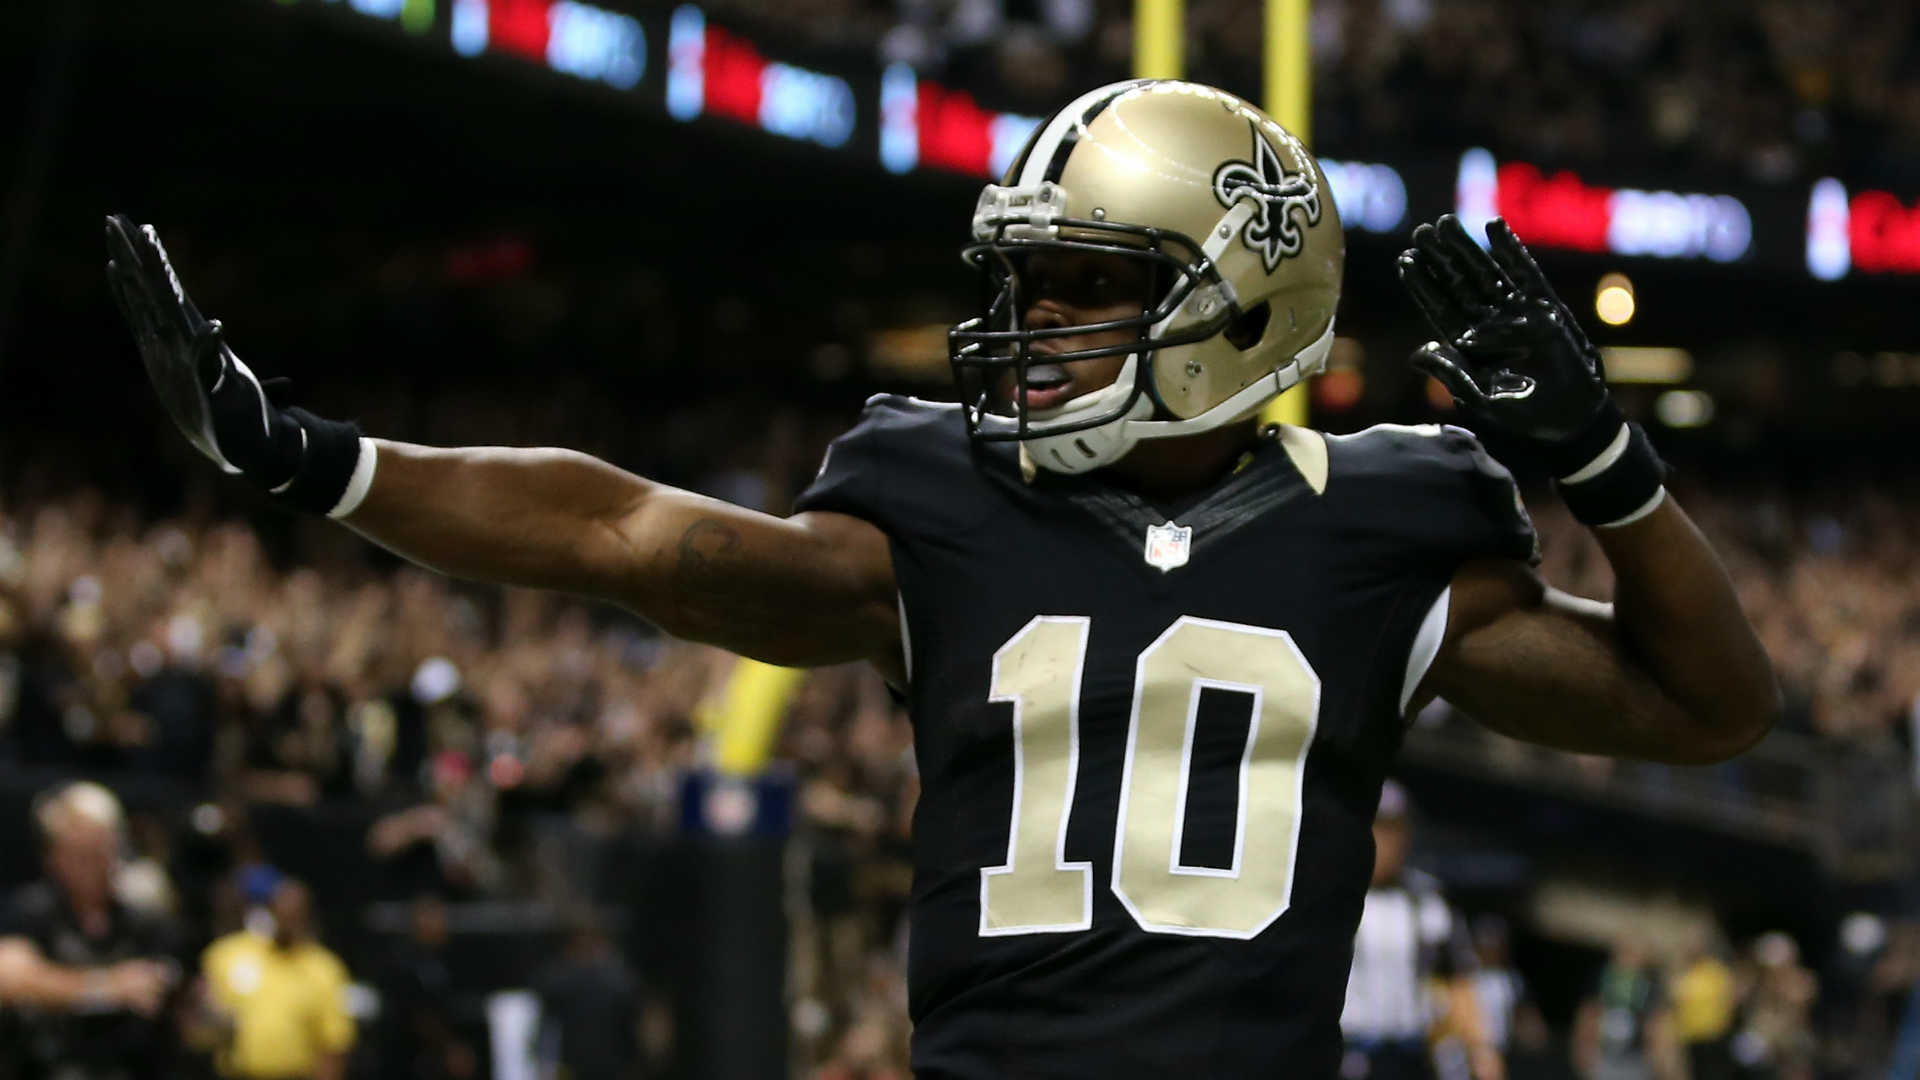 Ravens vs. Saints betting preview and pick – Can Saints rediscover winning ways in the Superdome?